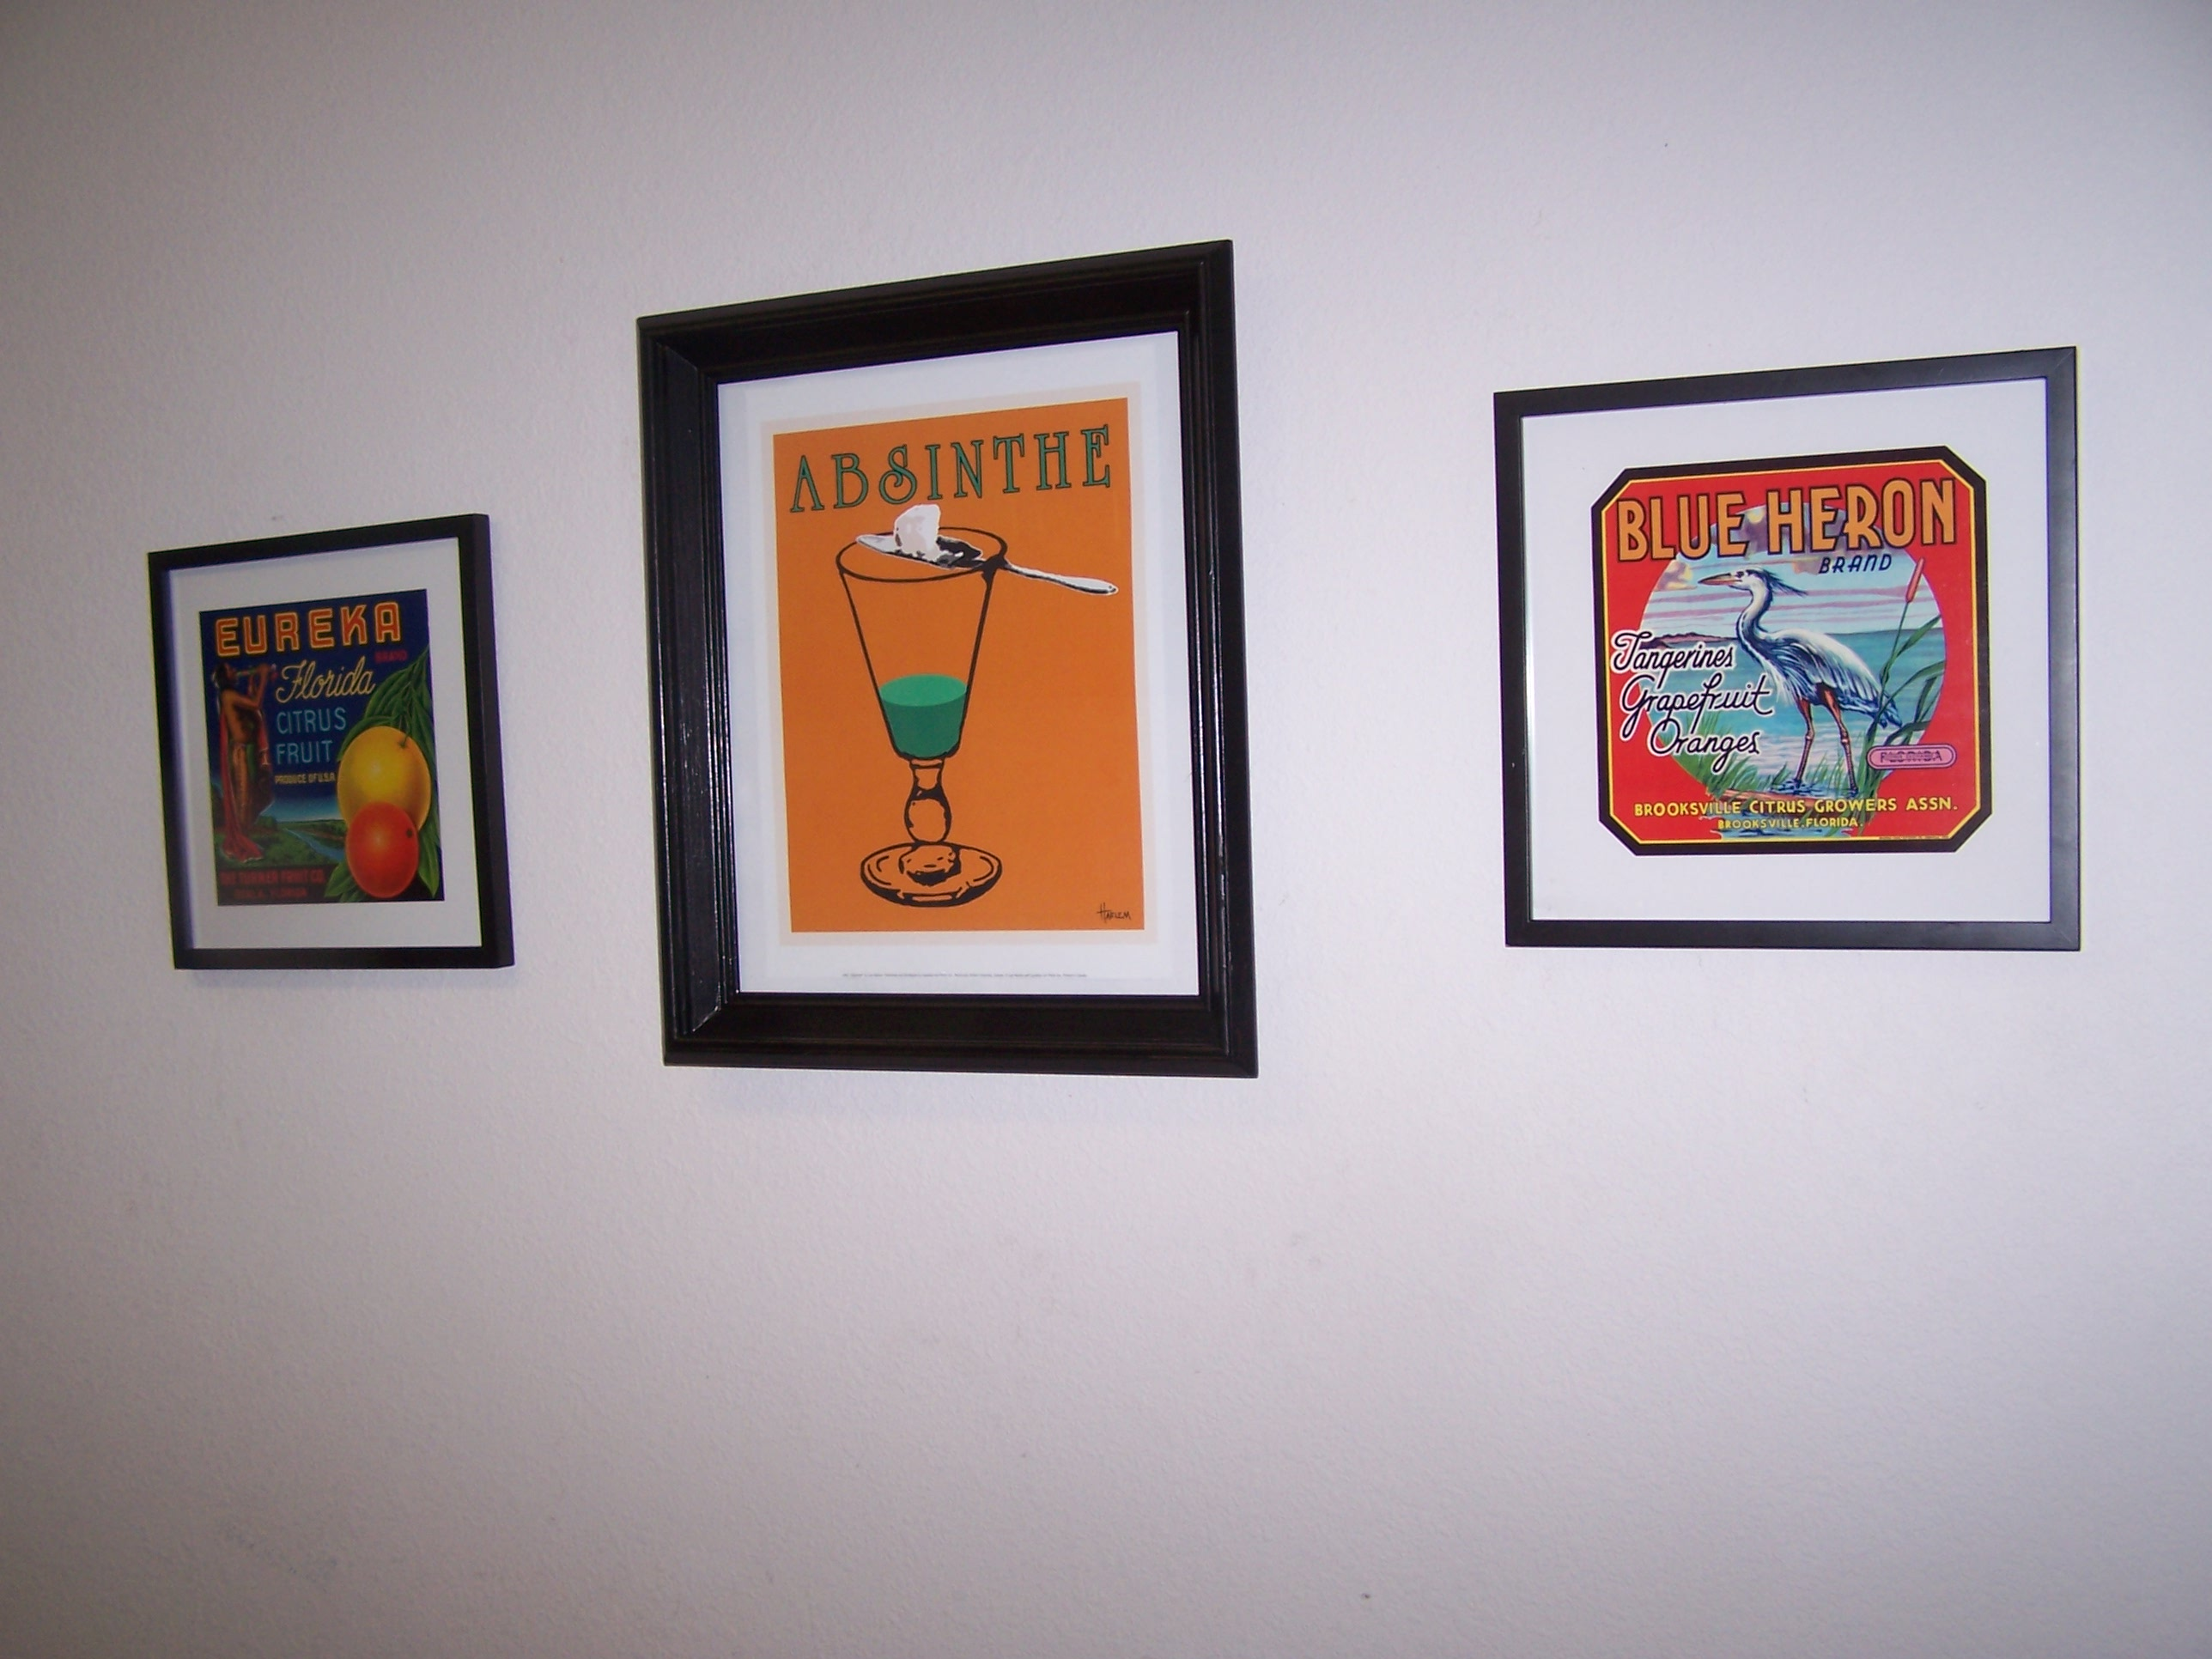 A close up of the framed ads